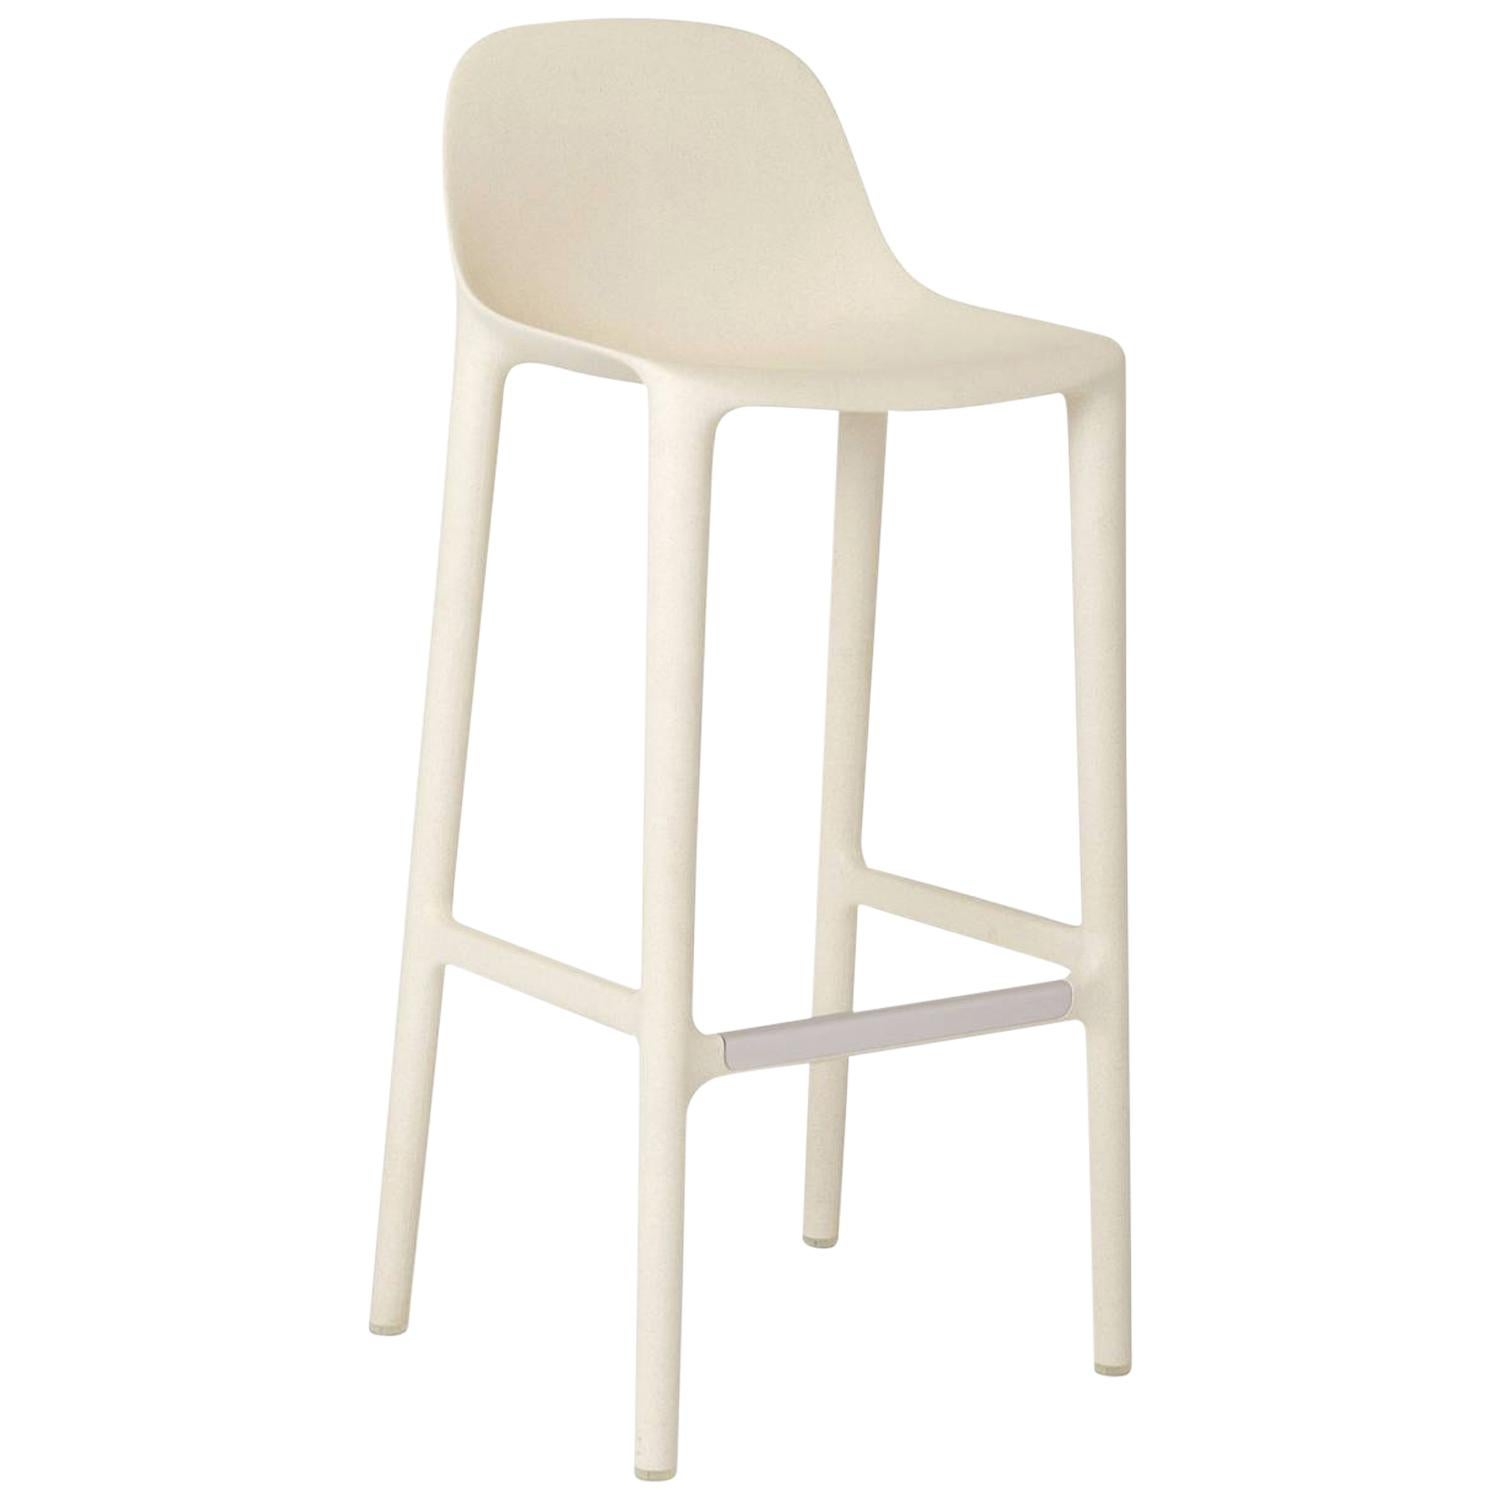 Emeco Broom Barstool in White by Philippe Starck